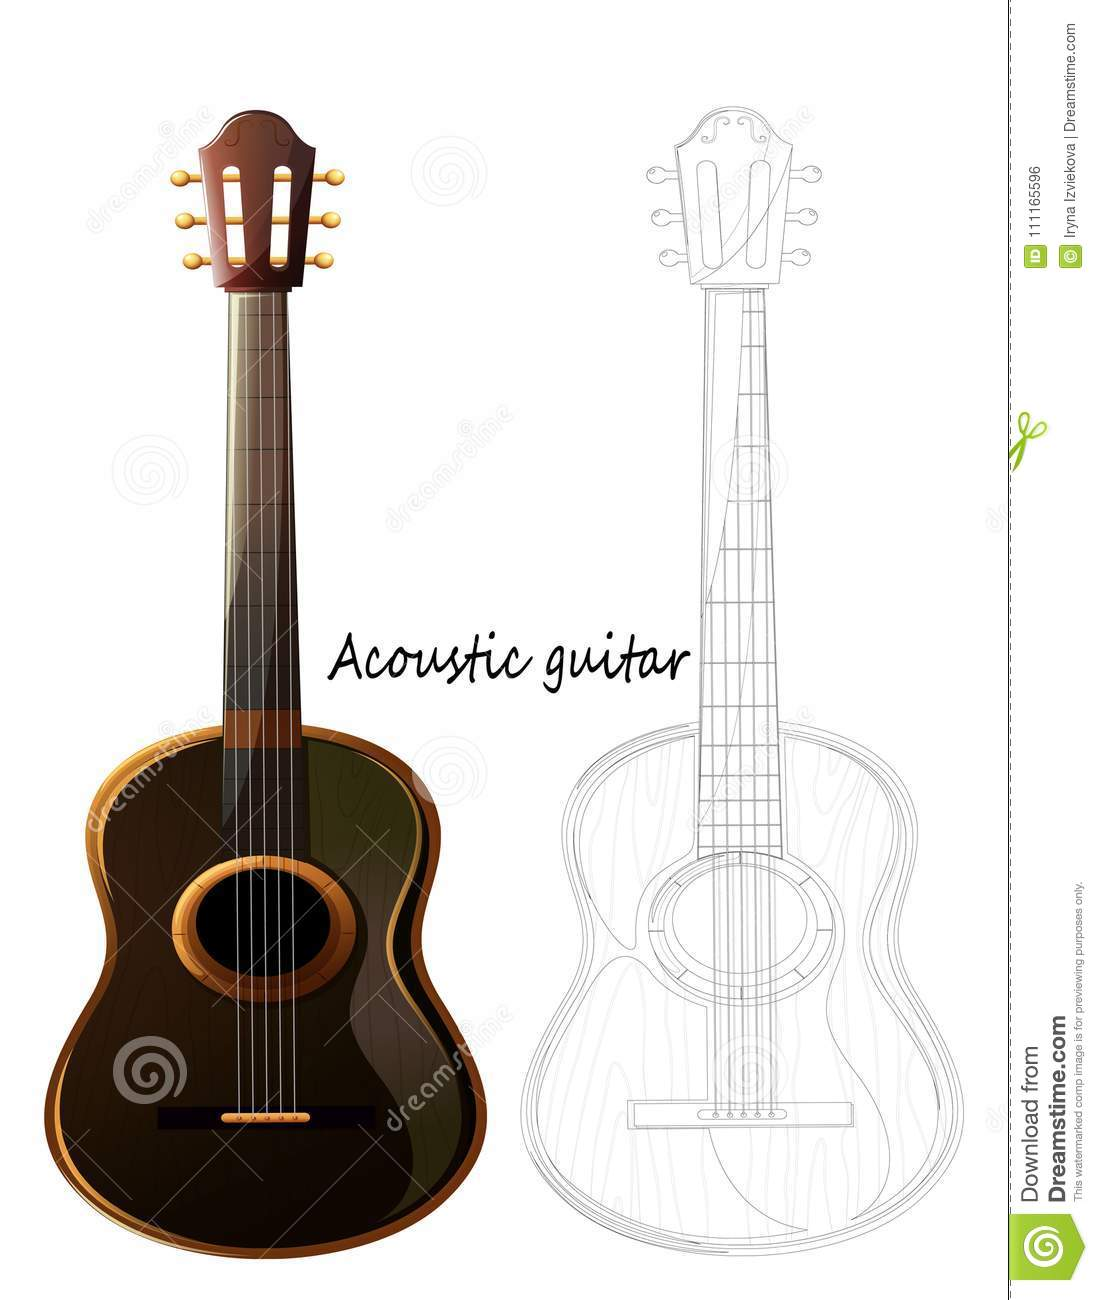 A beautiful musical instrument a wooden acoustic guitar close up sketch pencil sketch vector guitar